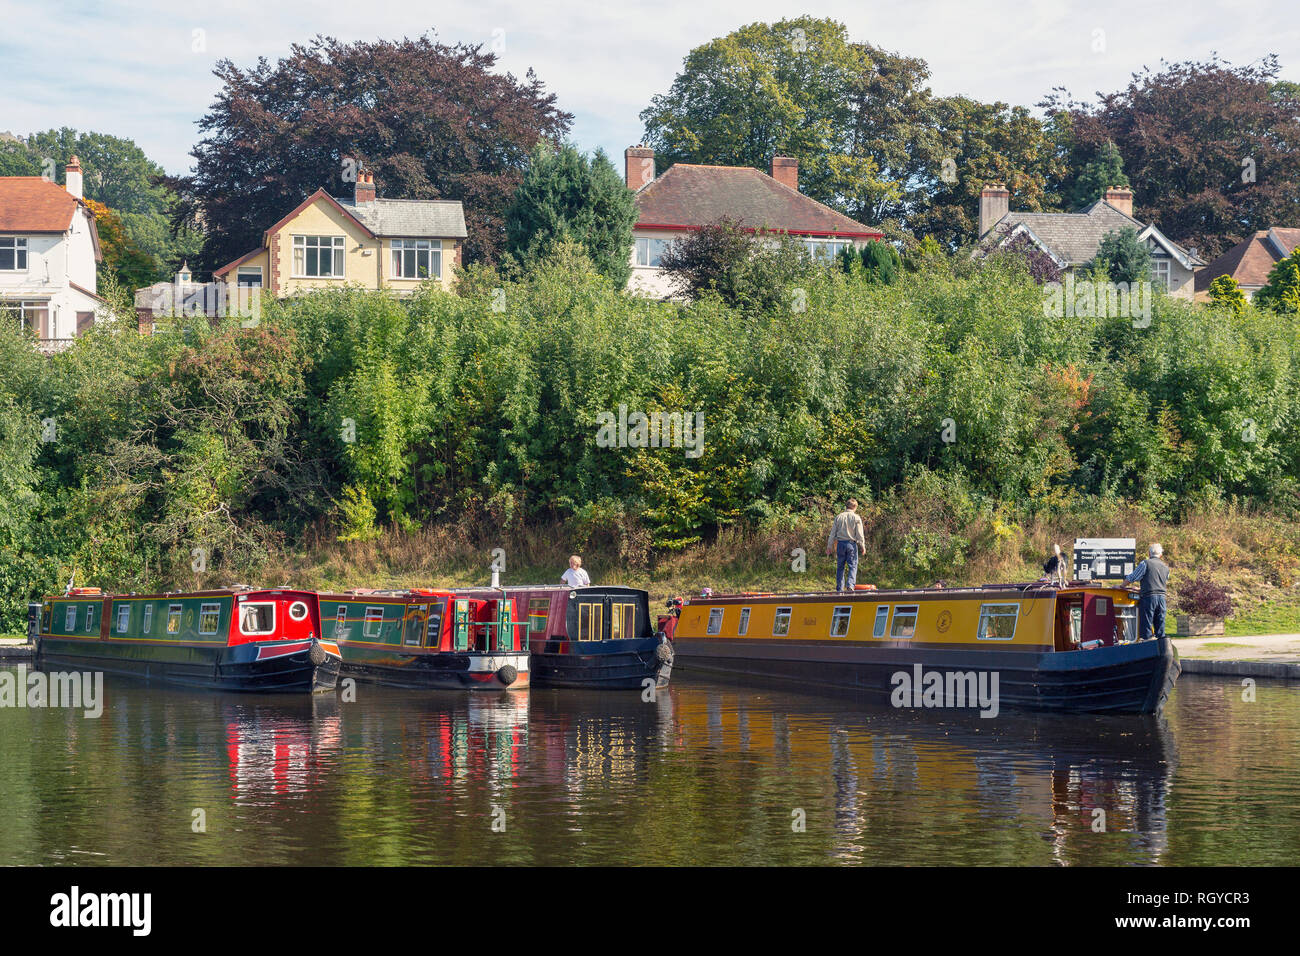 Llangollen, Denbighshire, Wales, United Kingdom.  Boats at the Llangollen Moorings.  These craft, known as narrowboats, were designed specifically for - Stock Image